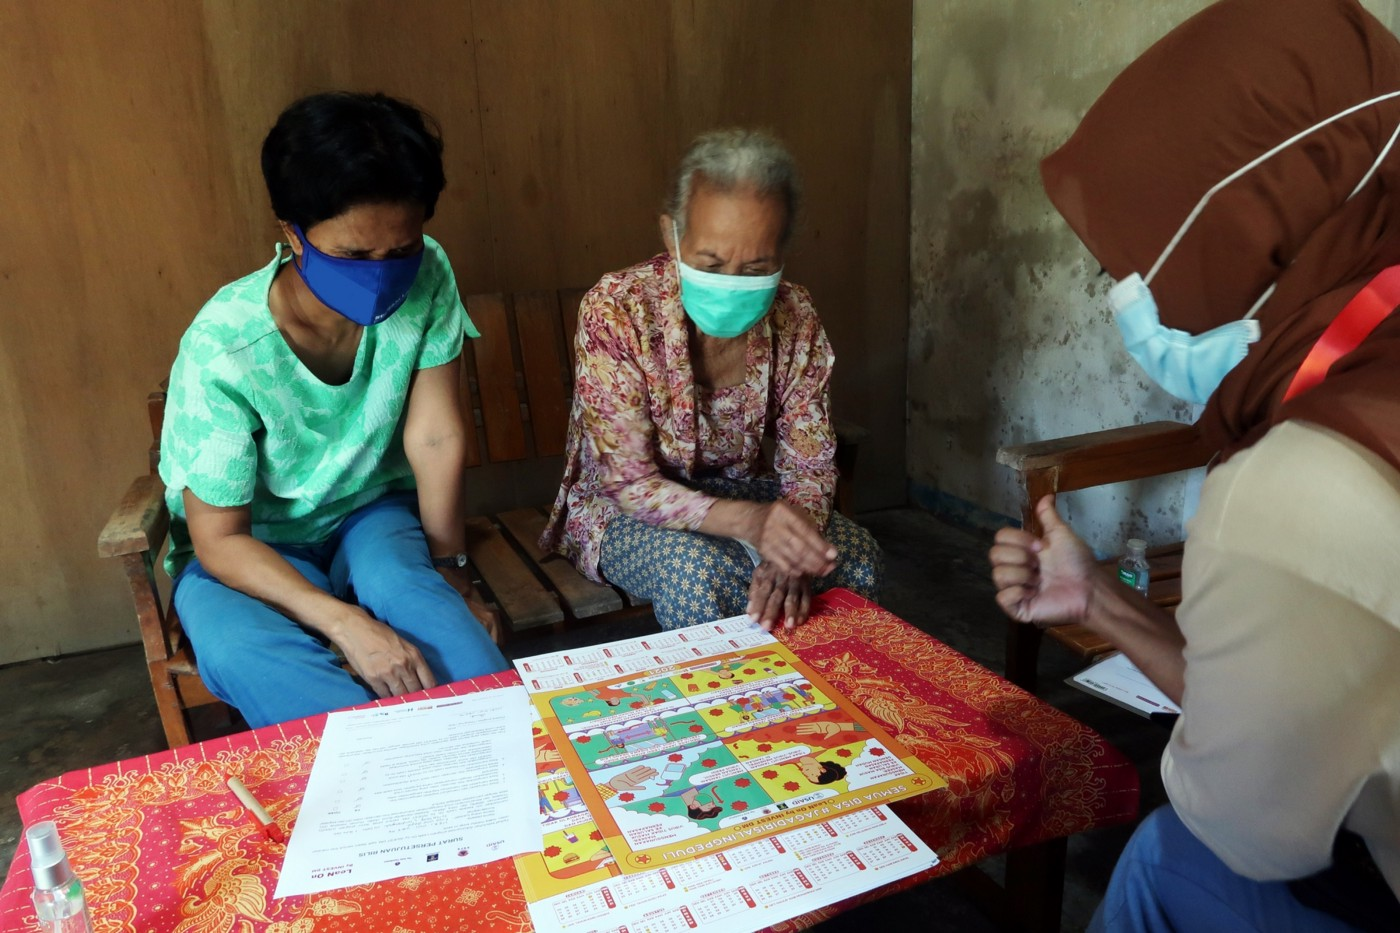 Ratna when delivering COVID-19 risk information and prevention education to an elderly participant who was accompanied by a family member